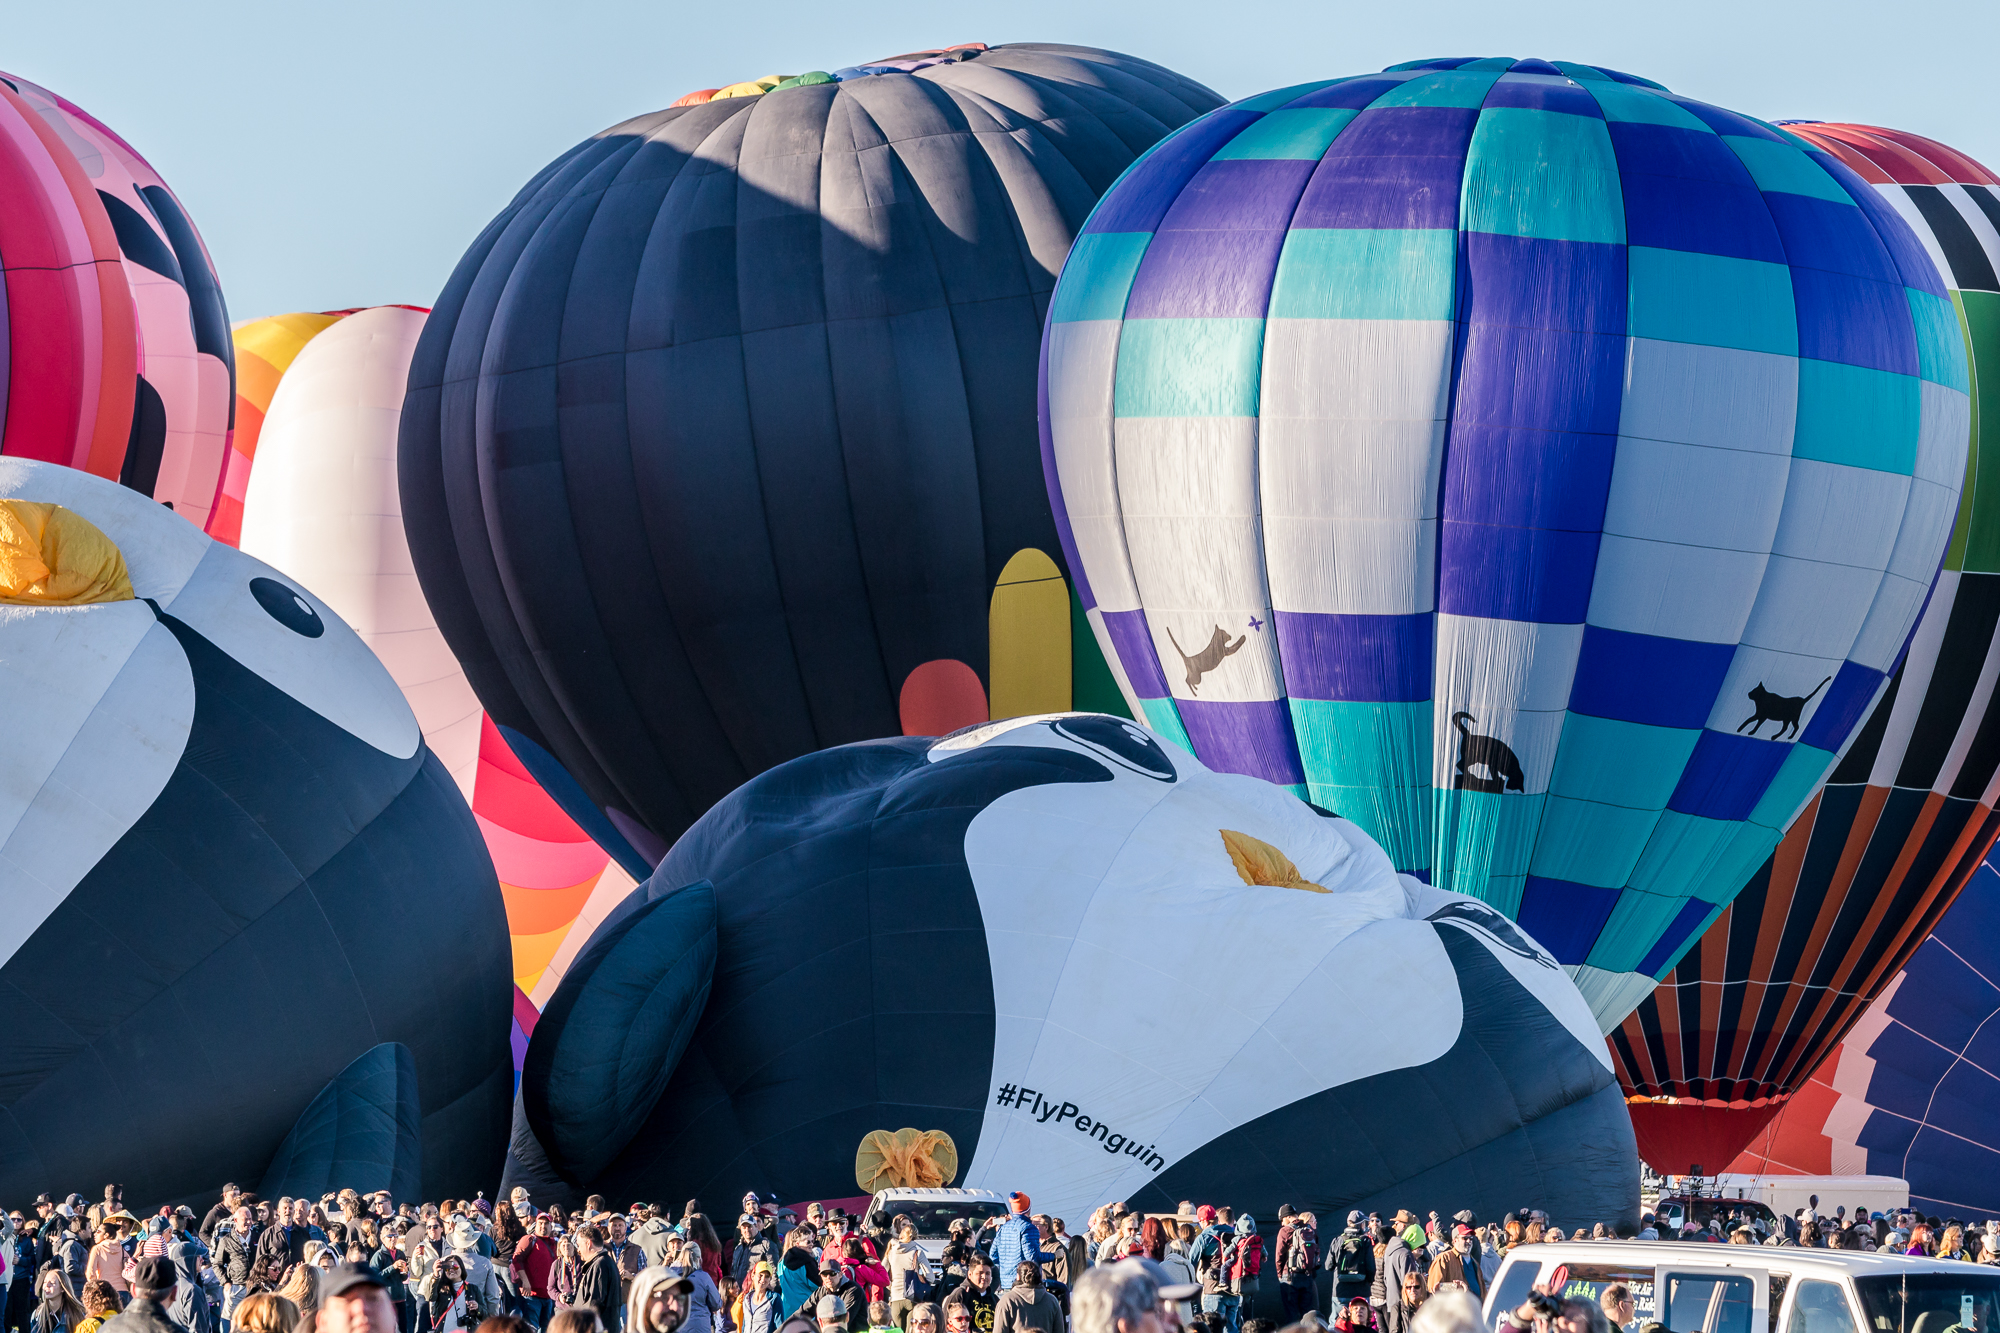 Shooting telephoto compresses the crowds against the balloons and shows how big the balloons are compared to humans.